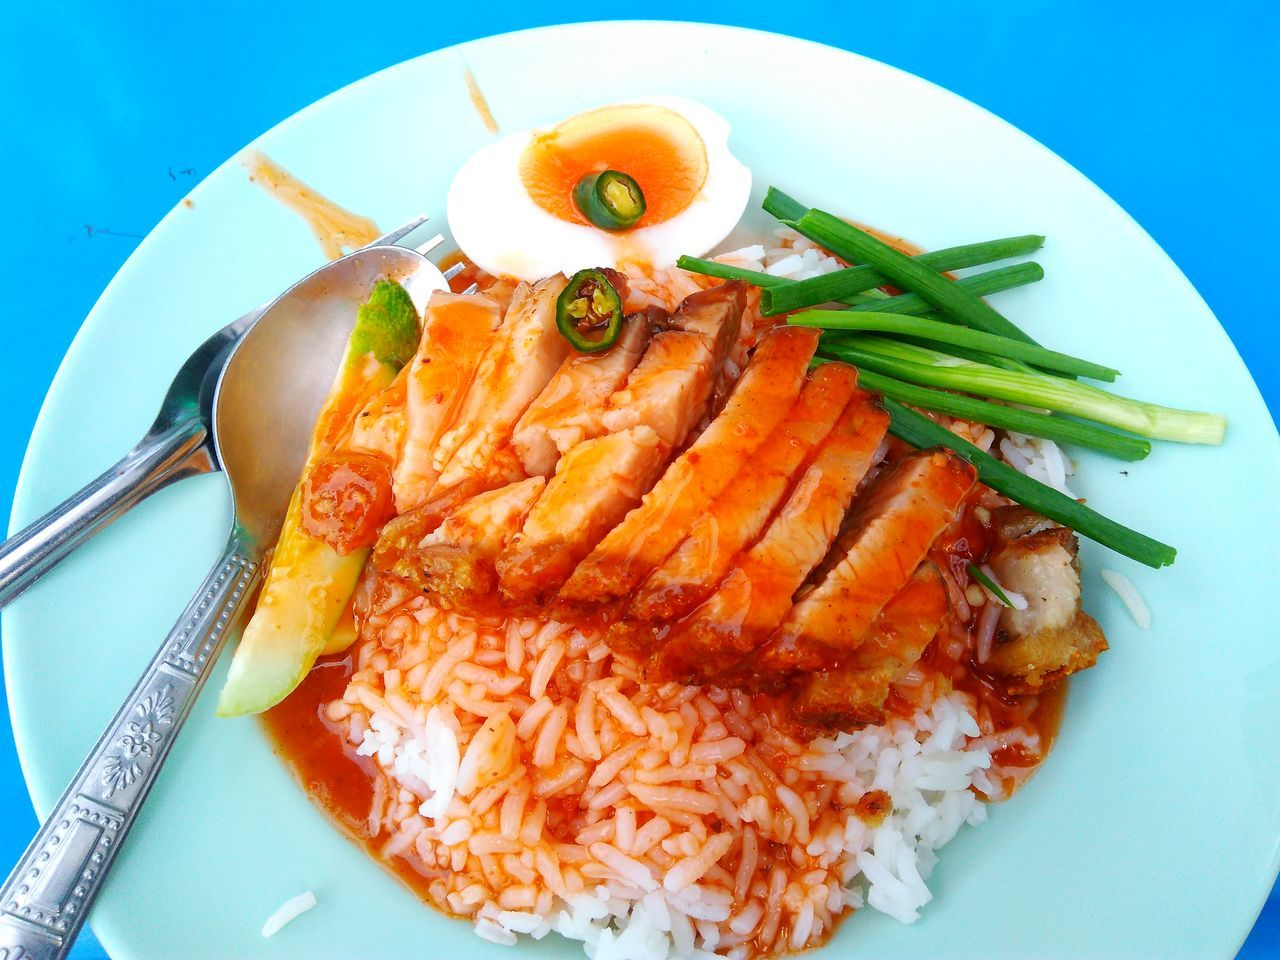 Crispy pork with rice Crispy Pork Roasted Pork Rice Rice Sweet Sauce Food Food And Drink Healthy Eating Plate Ready-to-eat Close-up Main Course Cooked Meal Serving Size Meal Homemade Yummy Delicuous Food Photography Bangkok Freshness